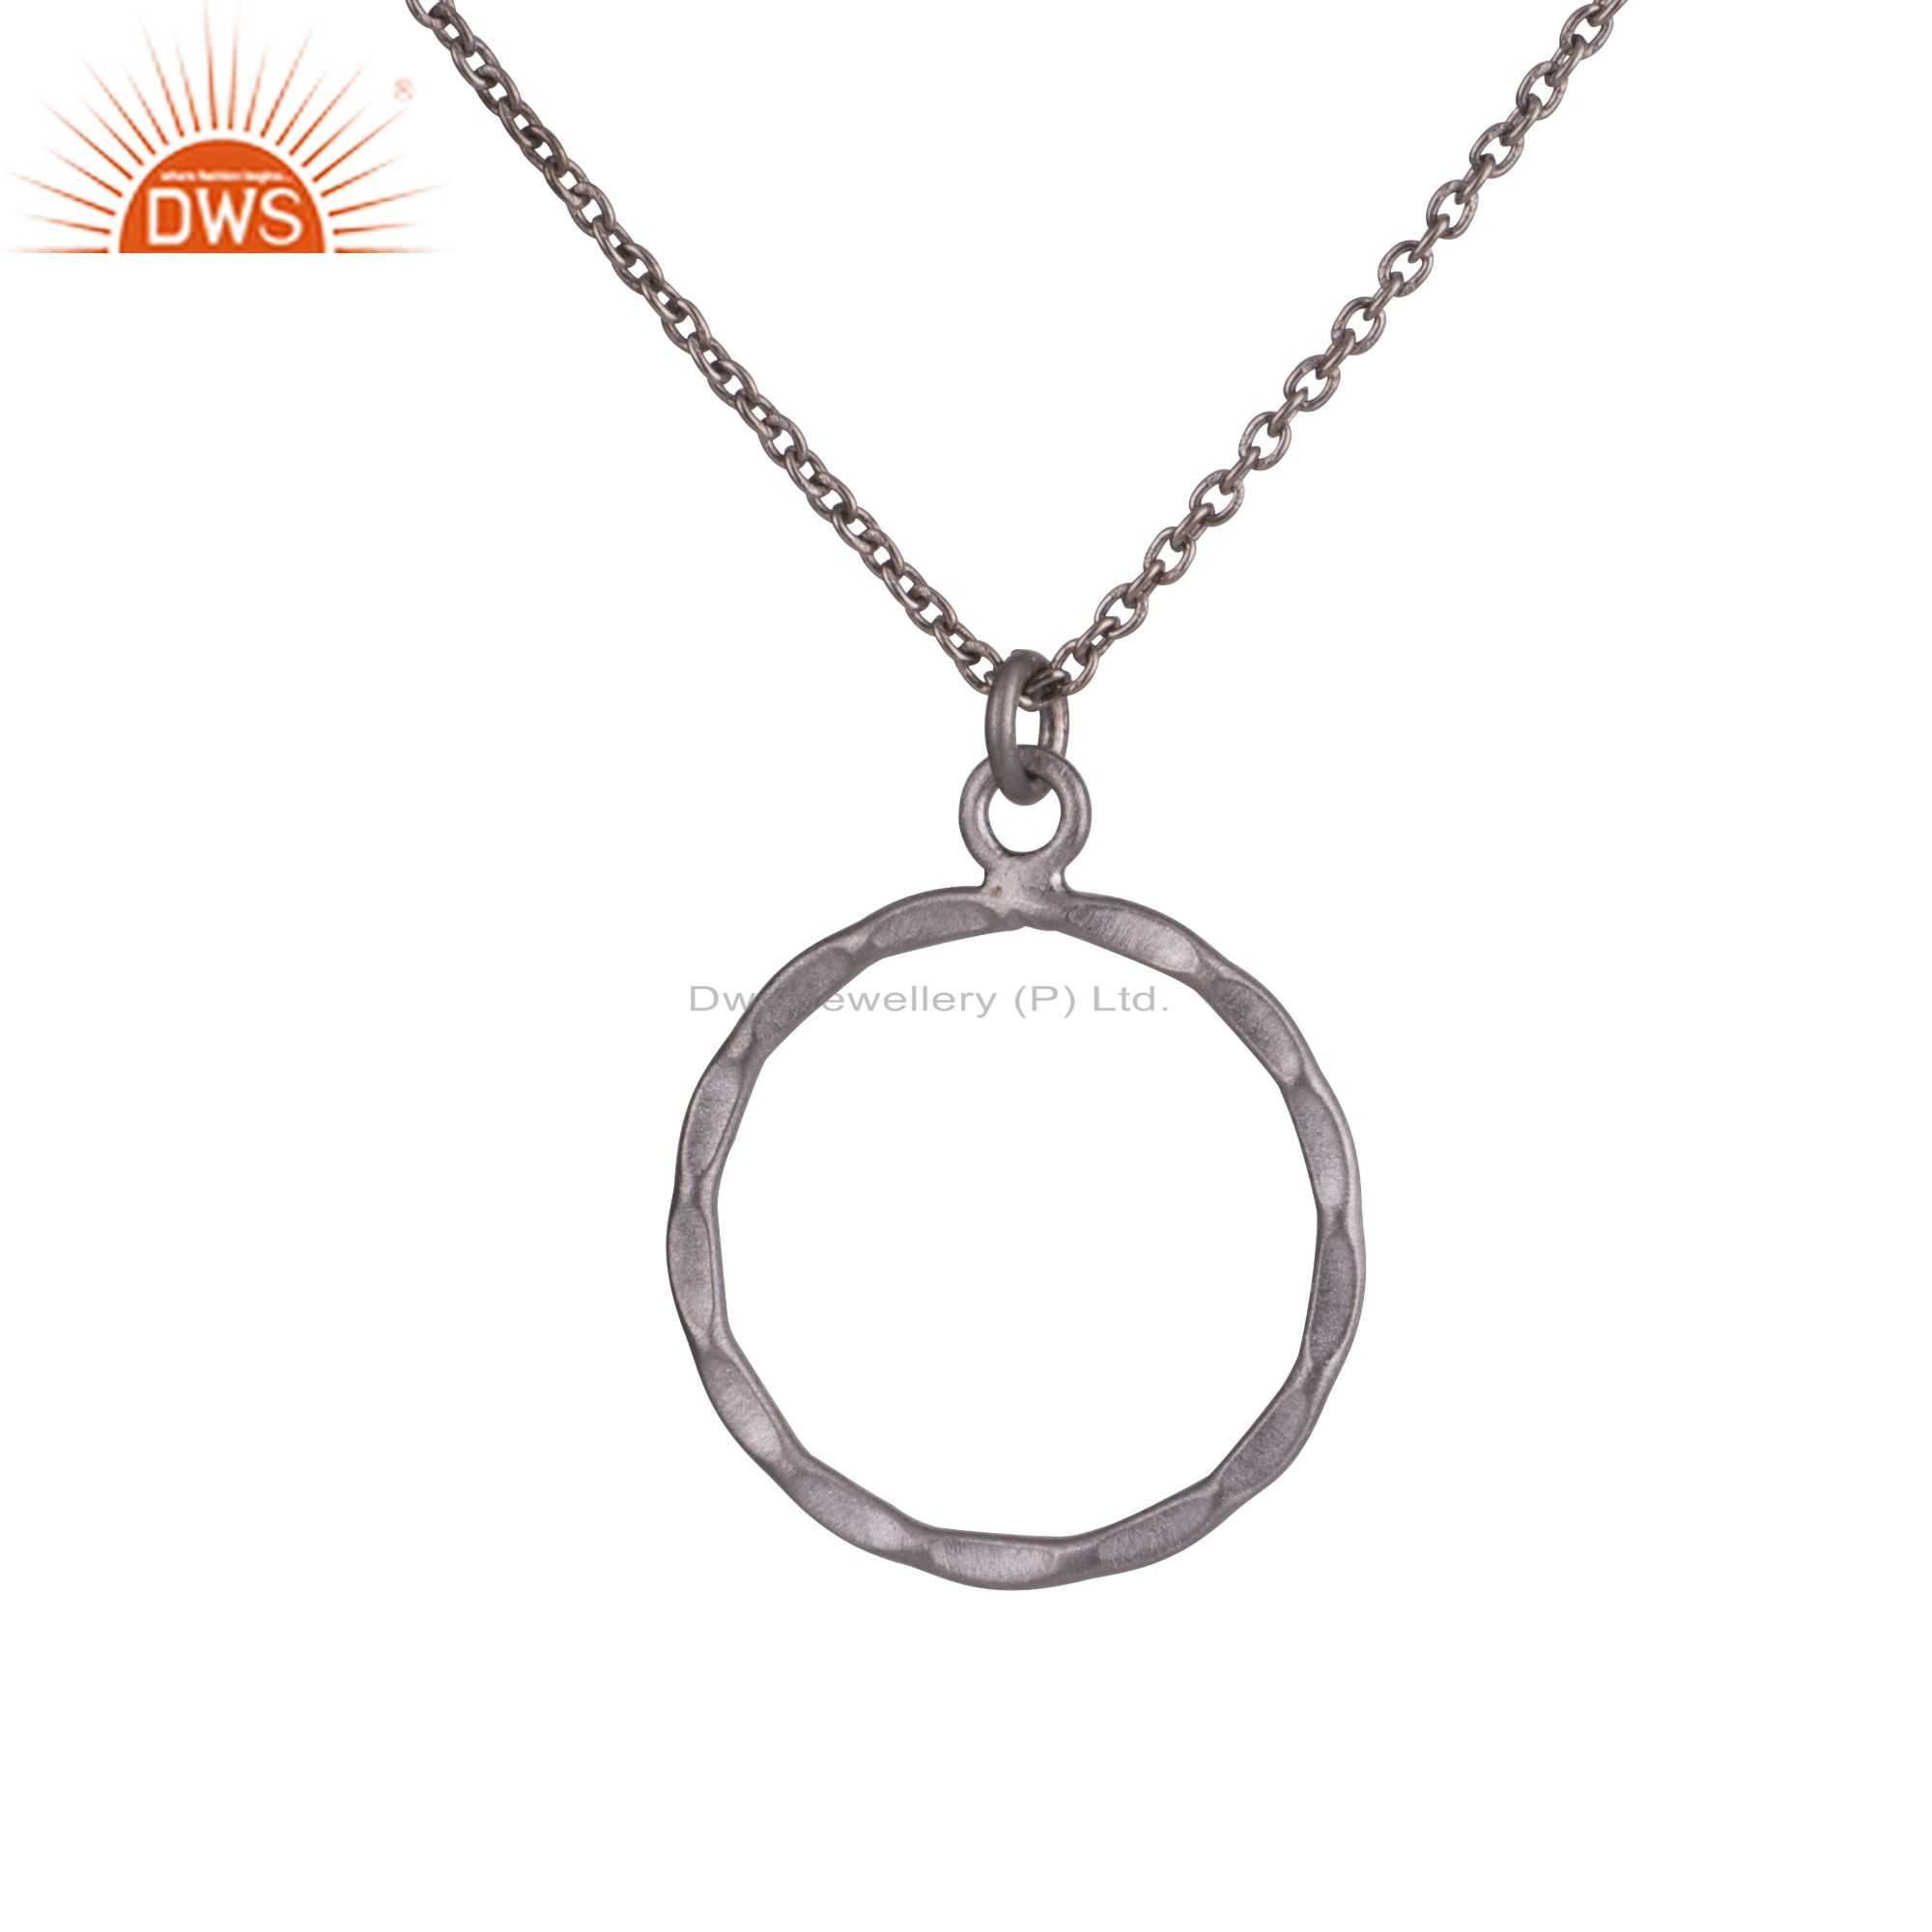 925 sterling silver oxidized hammered circle pendant with cable chain necklace